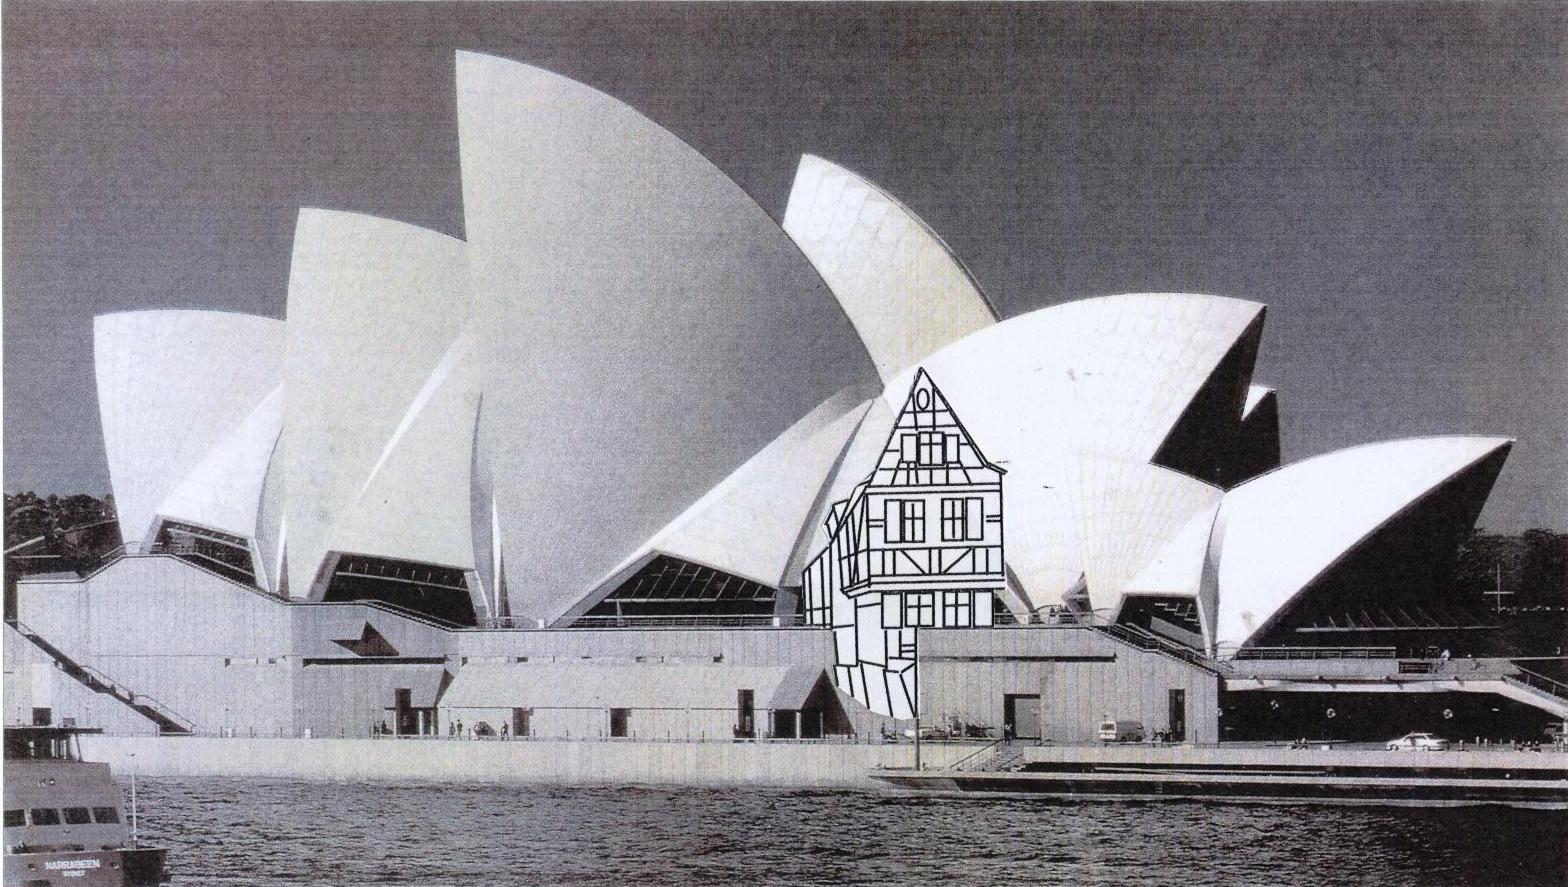 Terry Reid, 'Bavaria Visits Sydney, The Opera House goes to Malerwinkelhaus'.